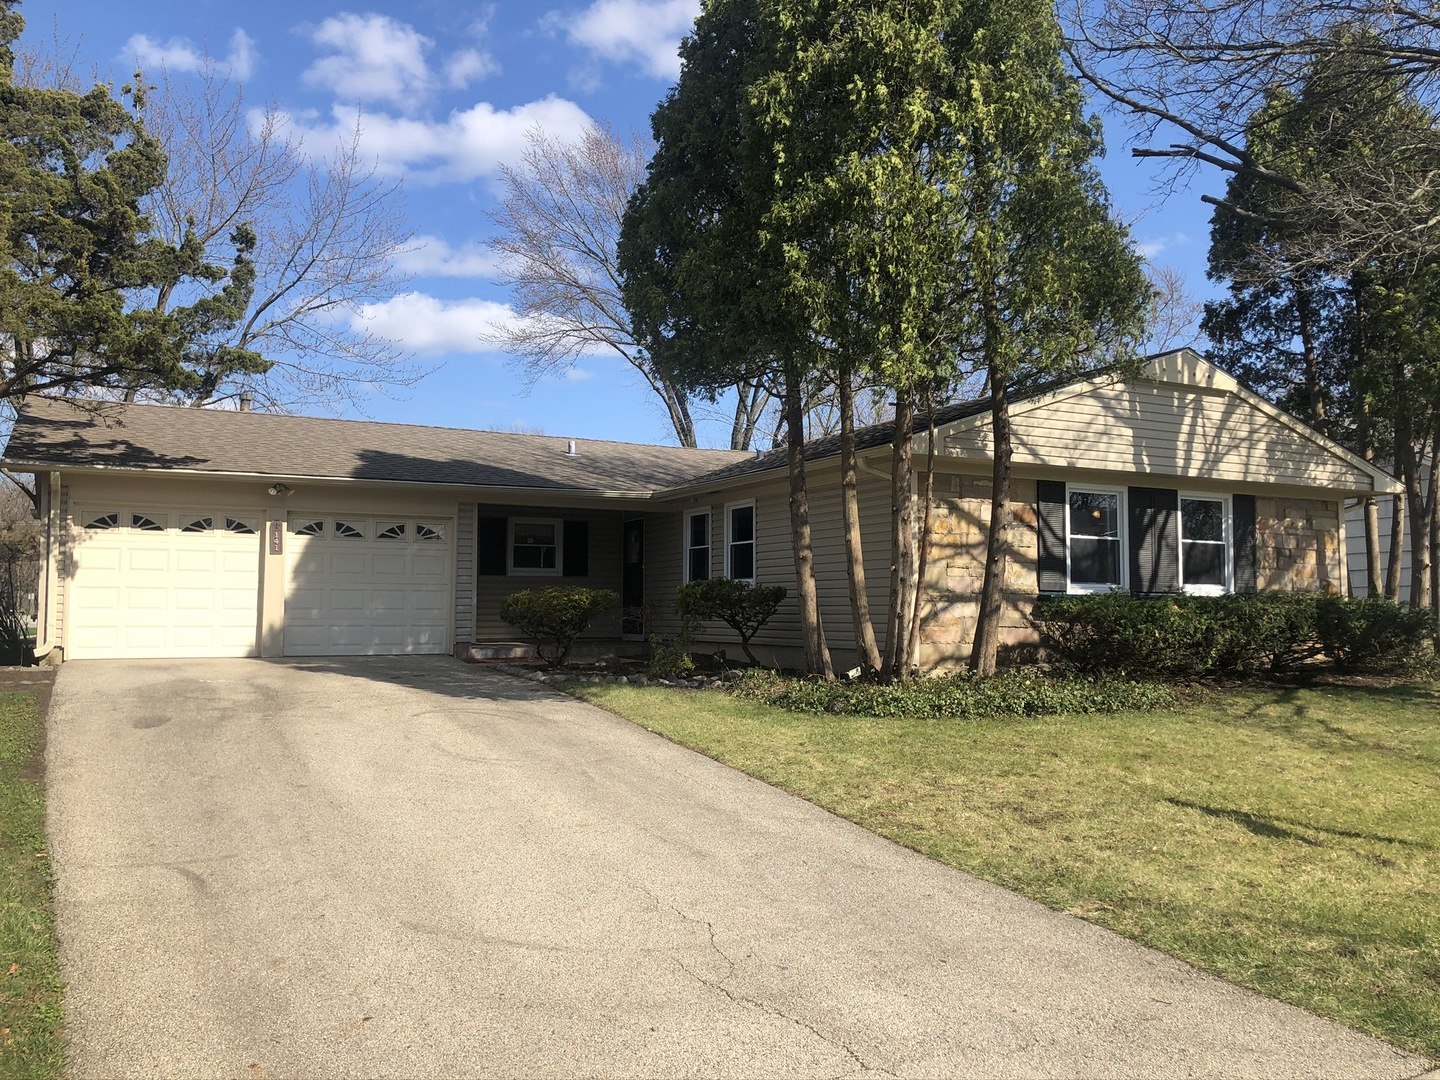 141 Weidner Road, Buffalo Grove in Cook County, IL 60089 Home for Sale